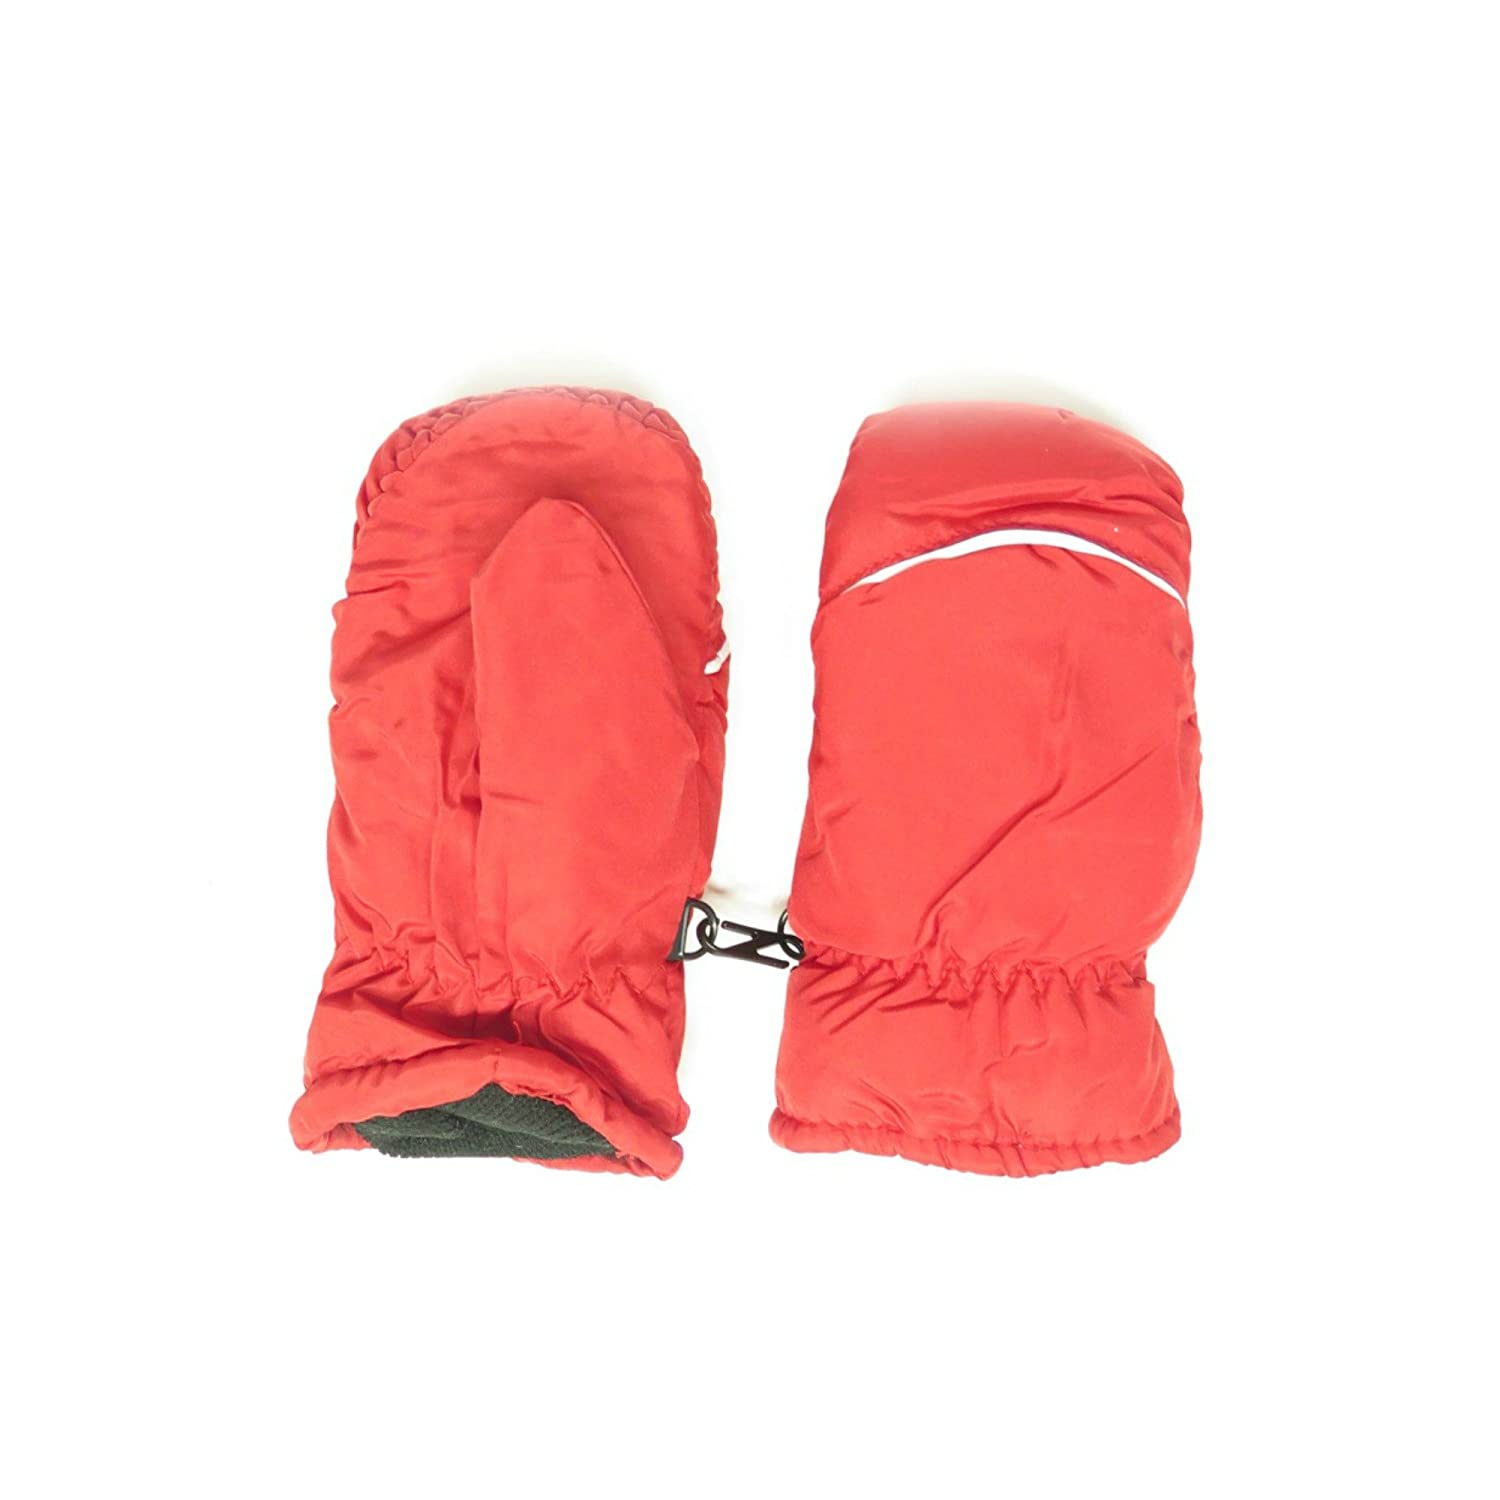 Magg Kids Toddlers Fleece Lined Winter Snow Glove Waterproof Solid 2-4T mittens Magg Shop